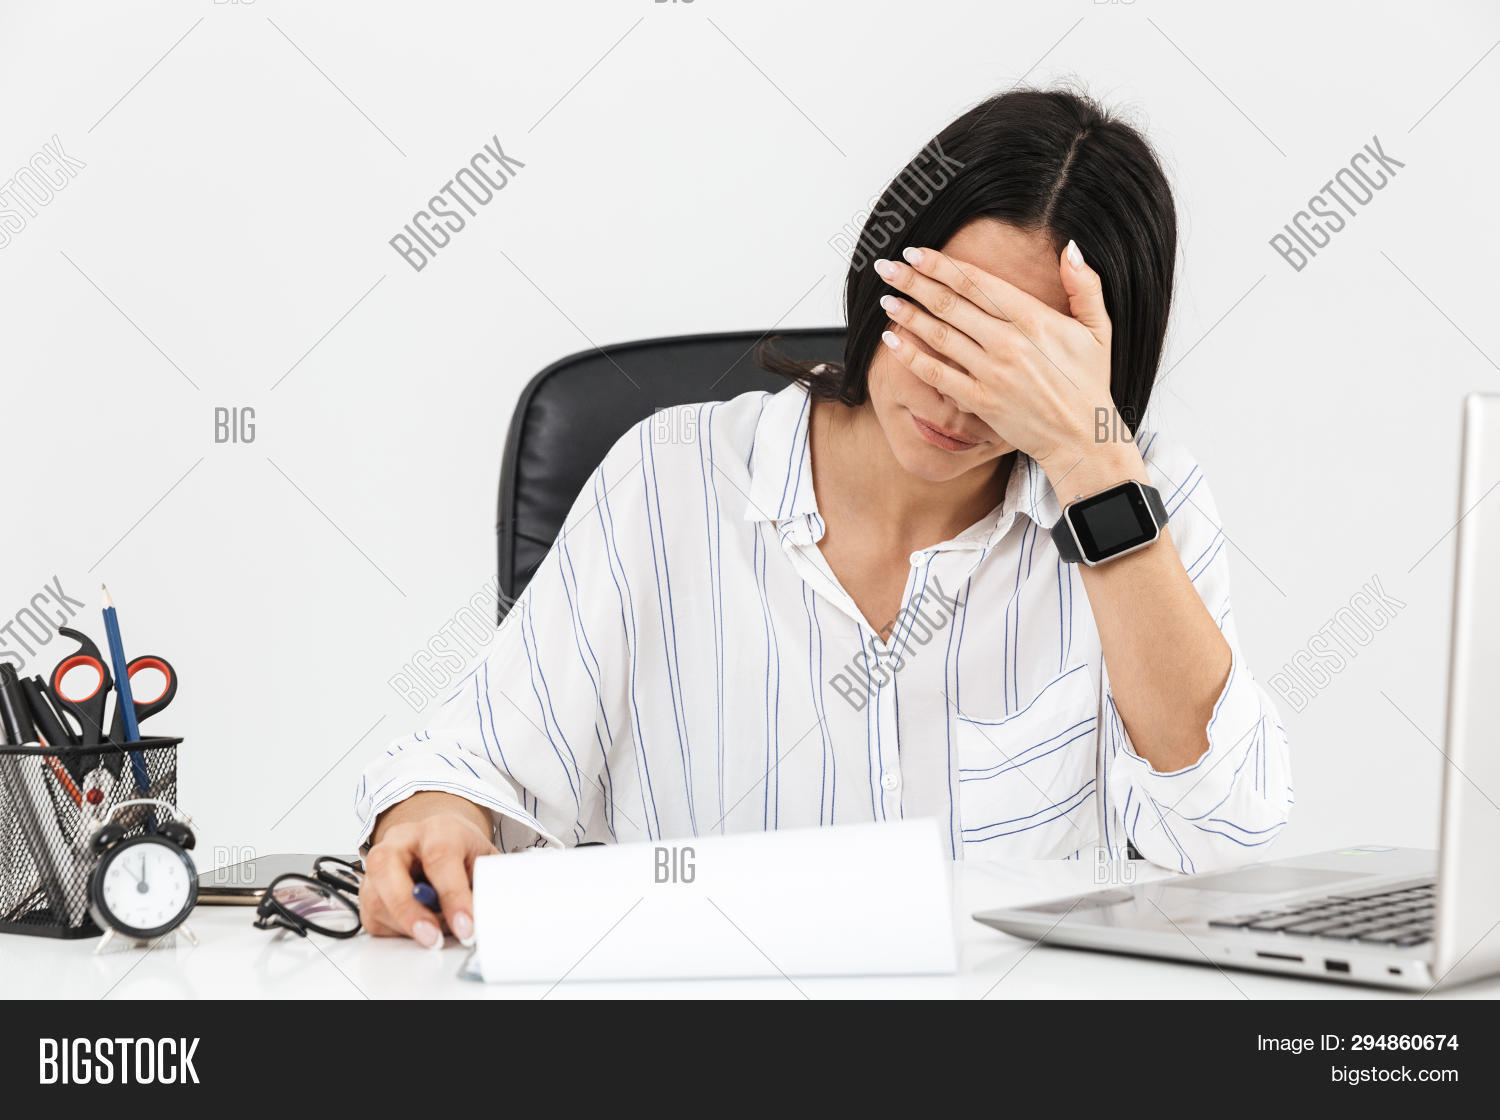 Photo Overworked Image Photo Free Trial Bigstock